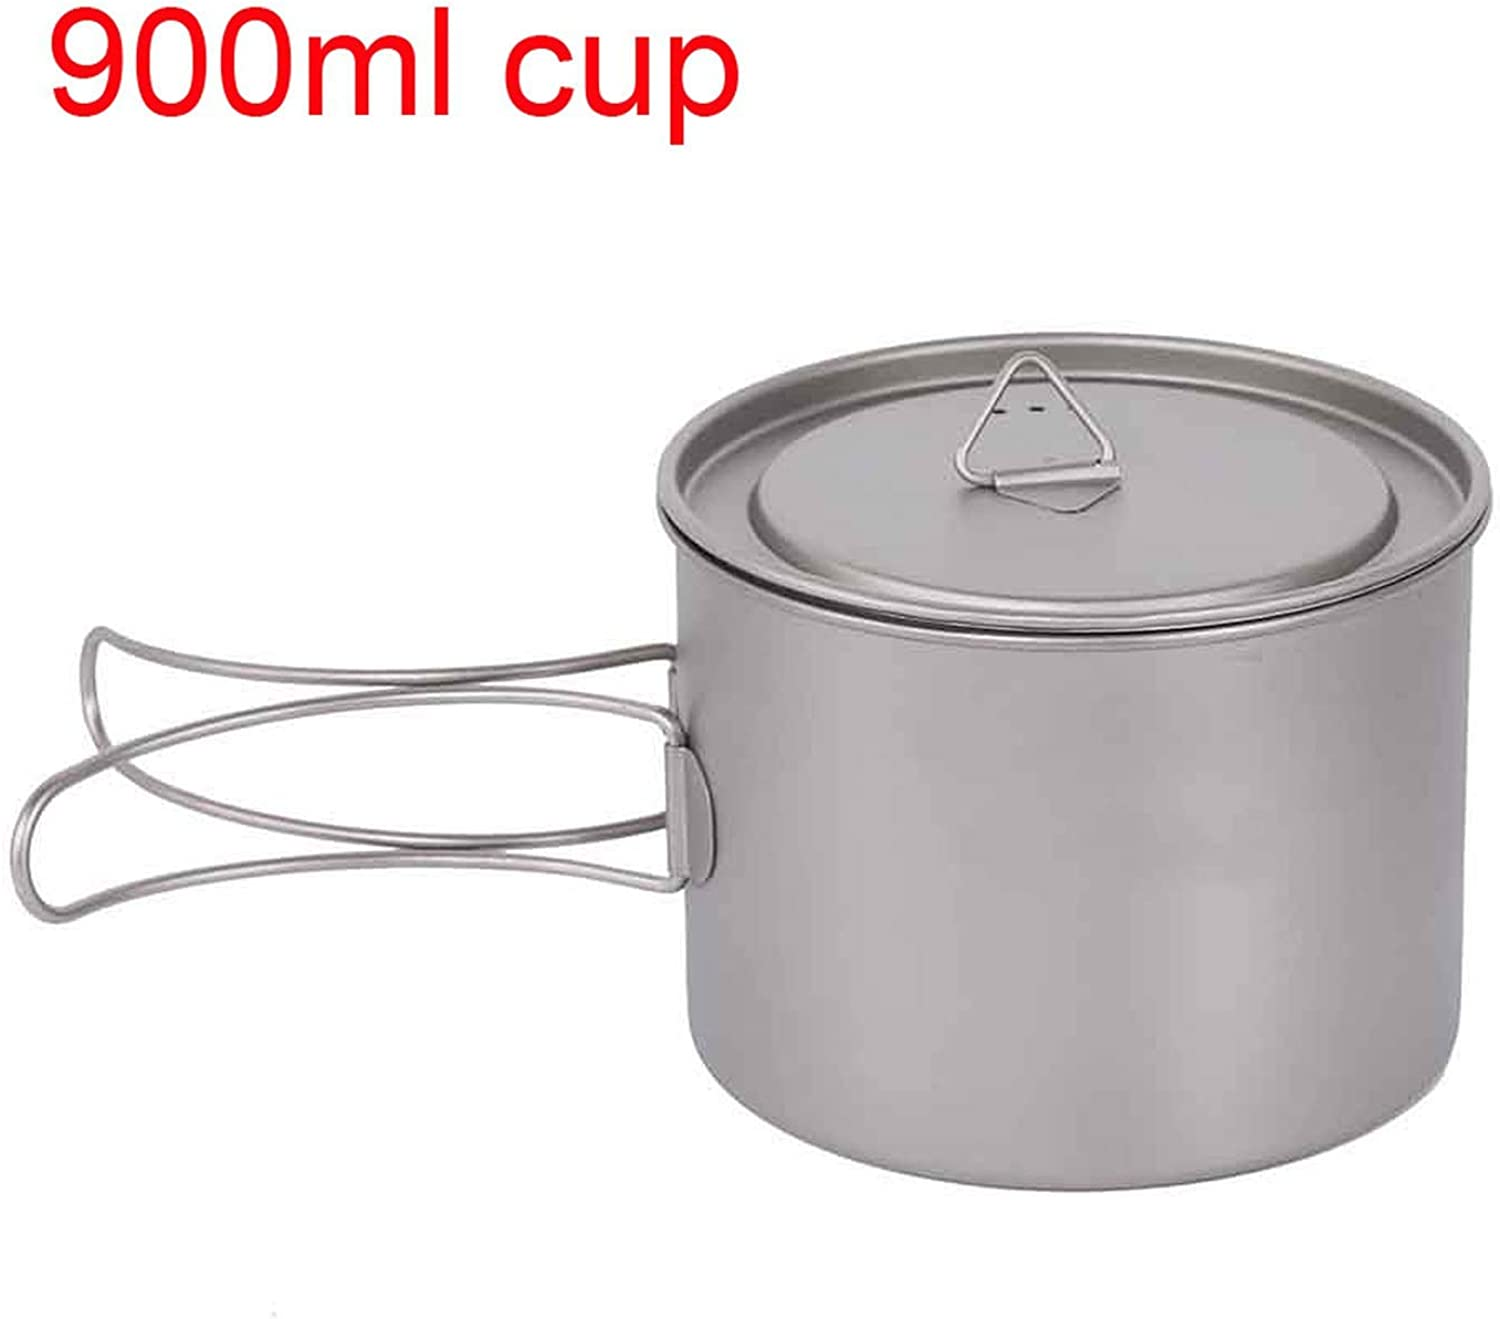 Camping Pots Pot Hanging Camping Portable Water Cup with Lid Foldable Handle Outdoor Picnic Cookware